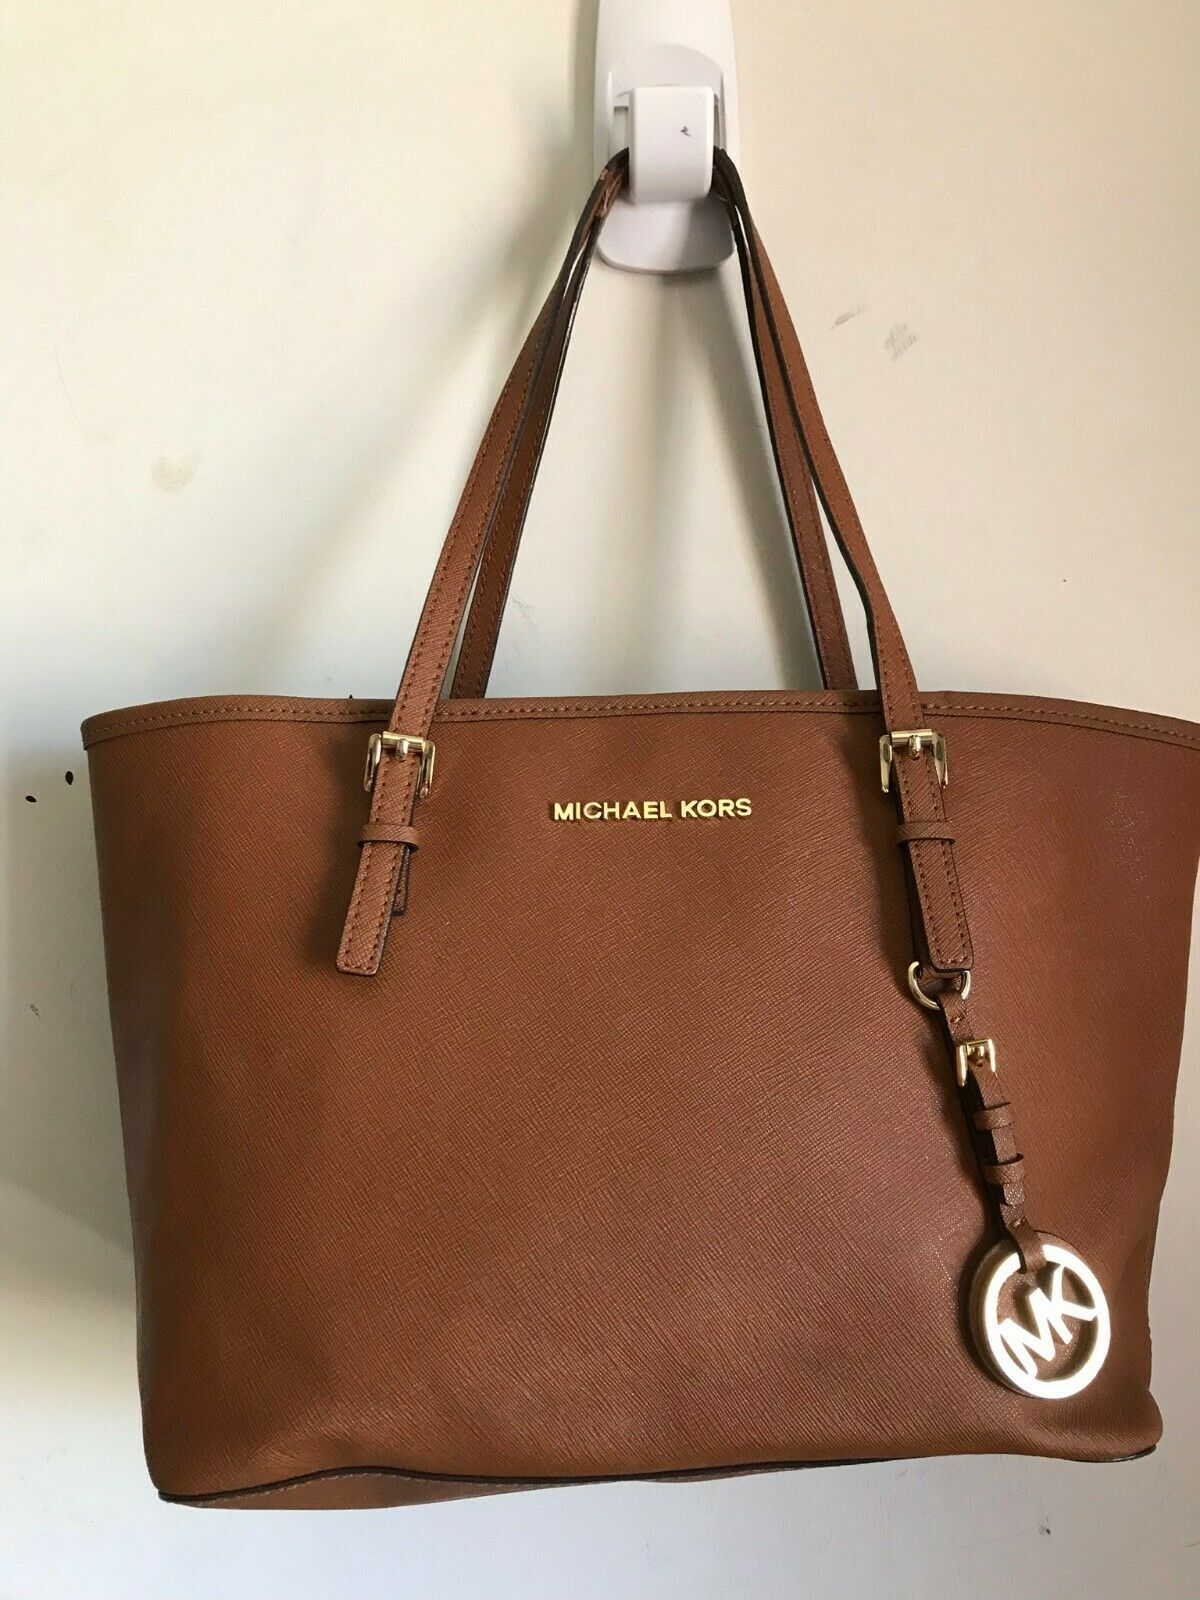 Michael Kors Saffiano Leather Tote Shoulder Bag - Tan